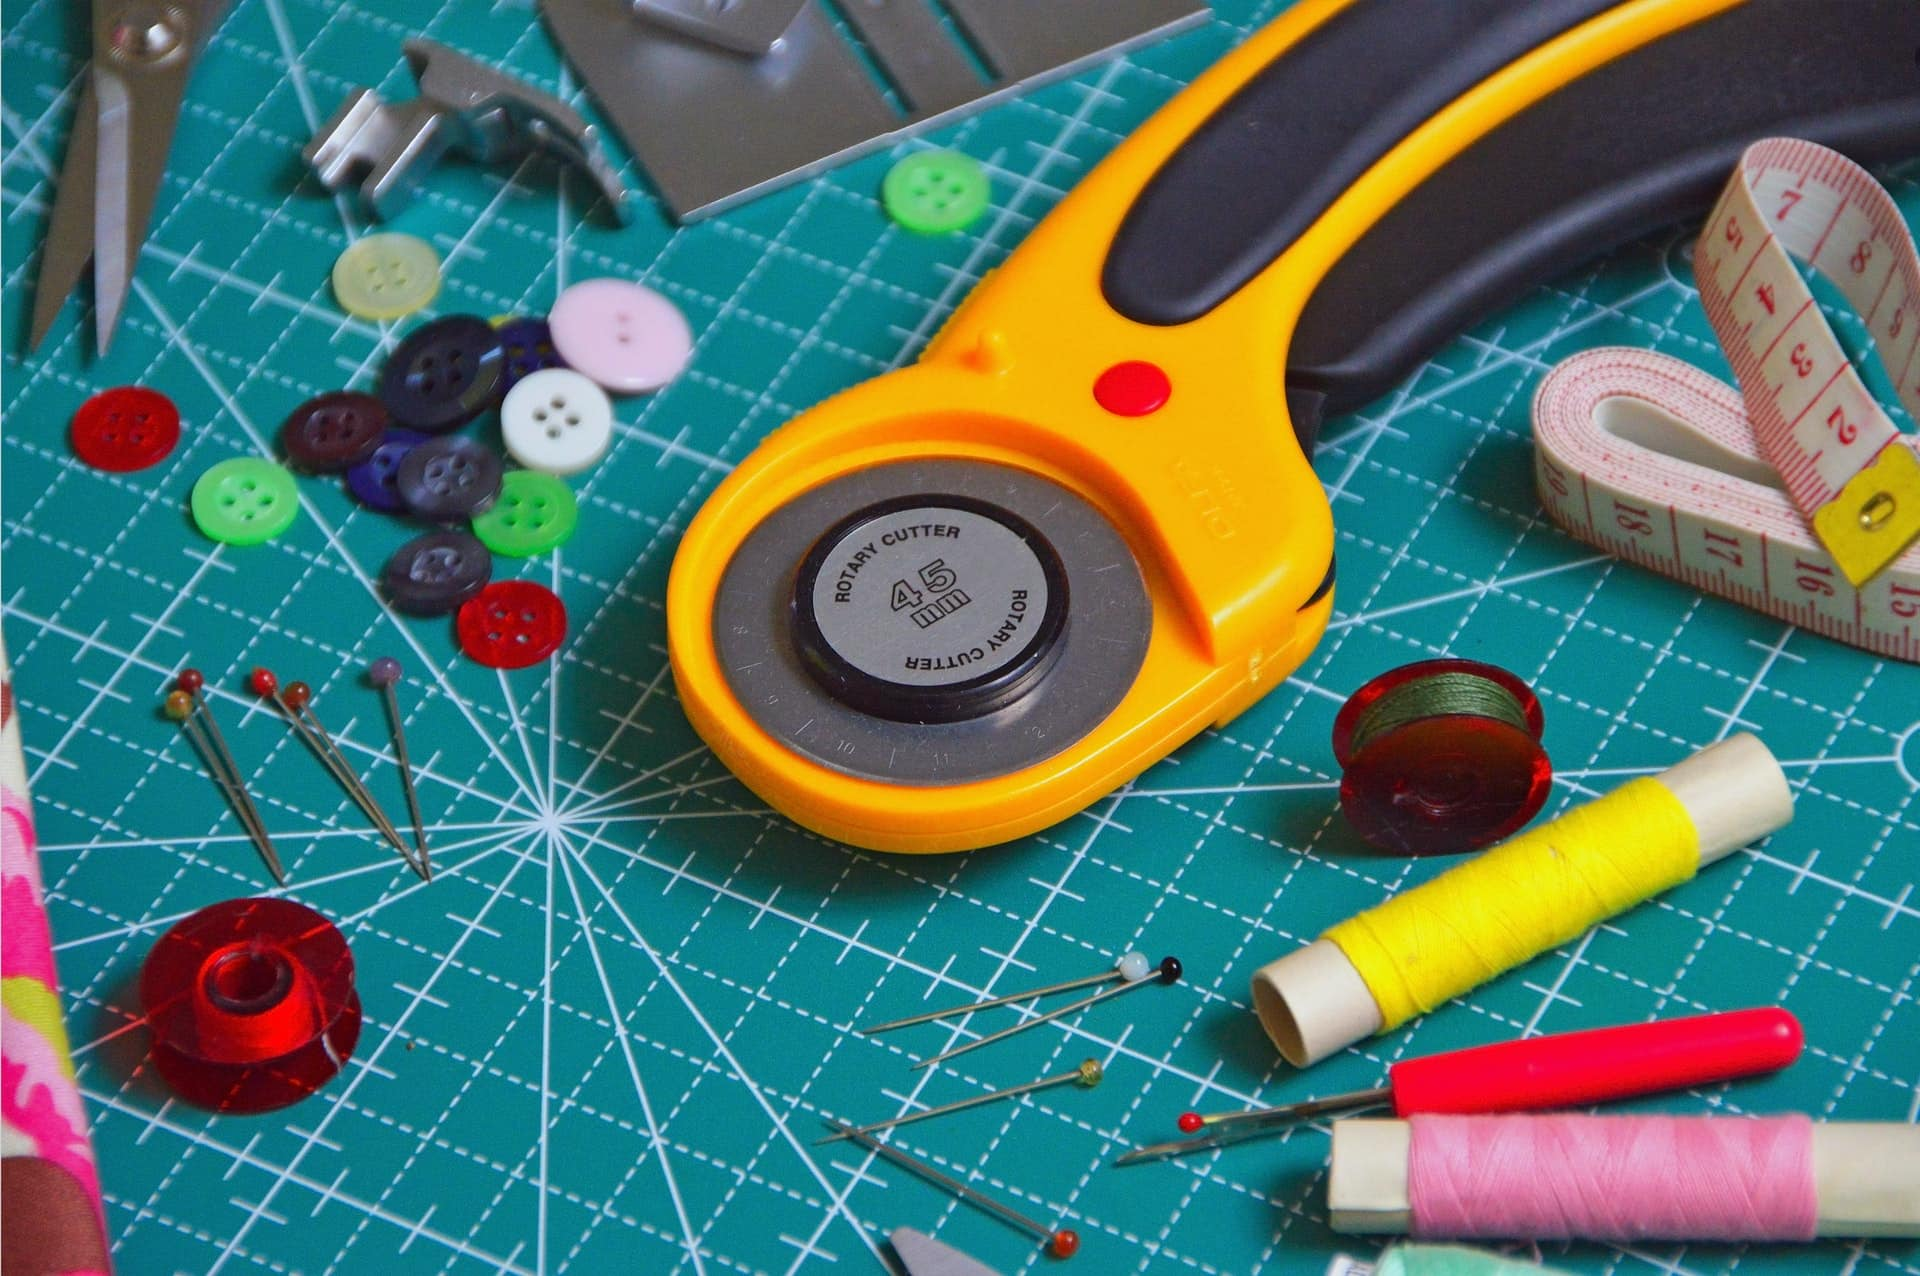 Can sewing be considered an art?